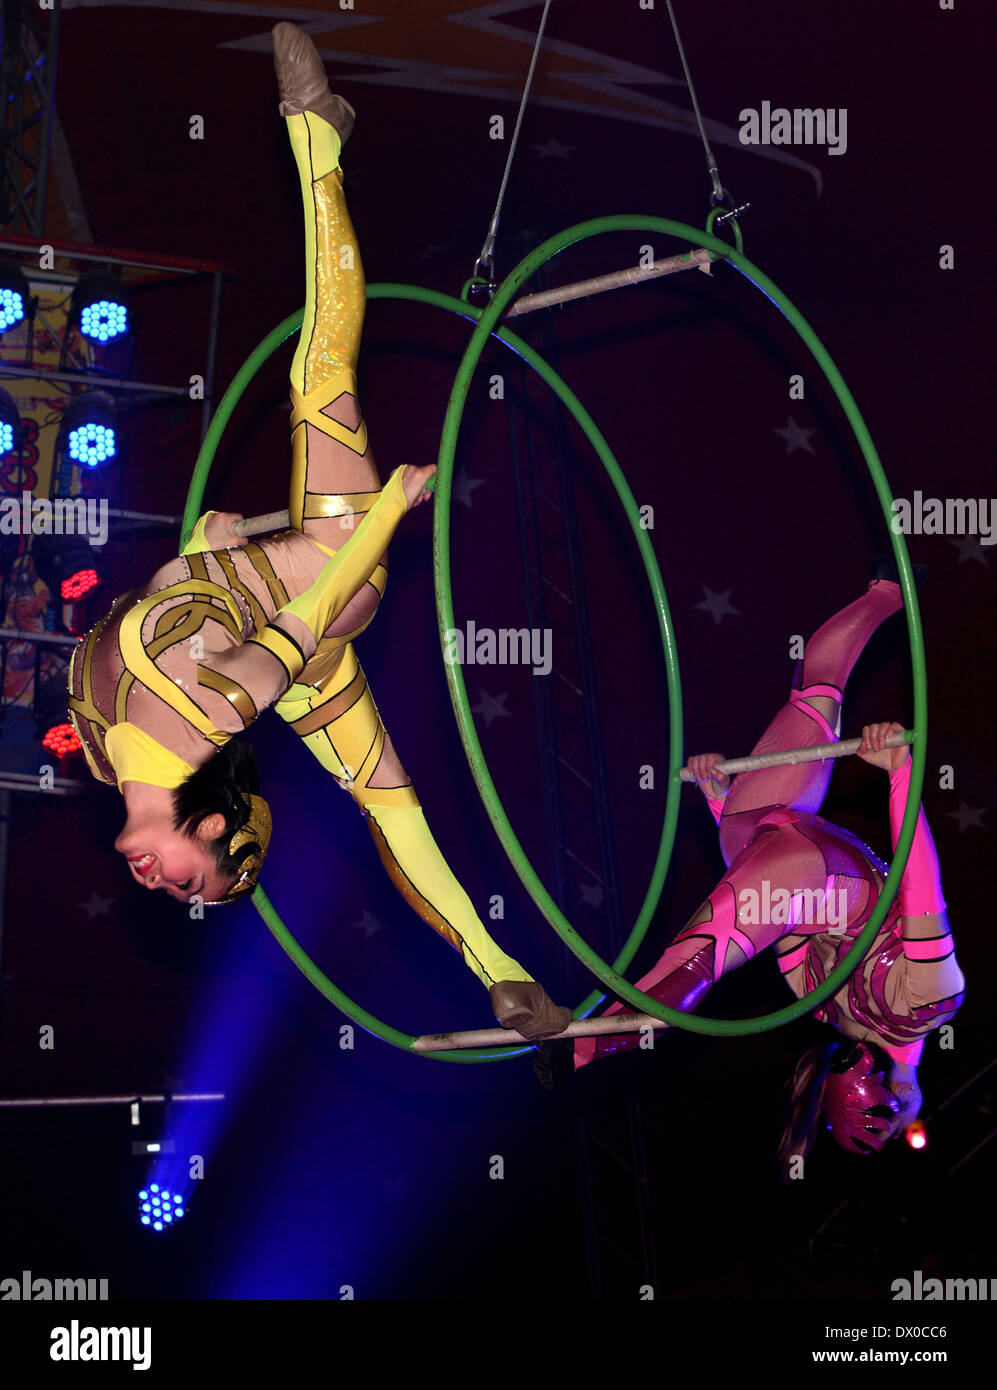 Circus performers - Stock Image